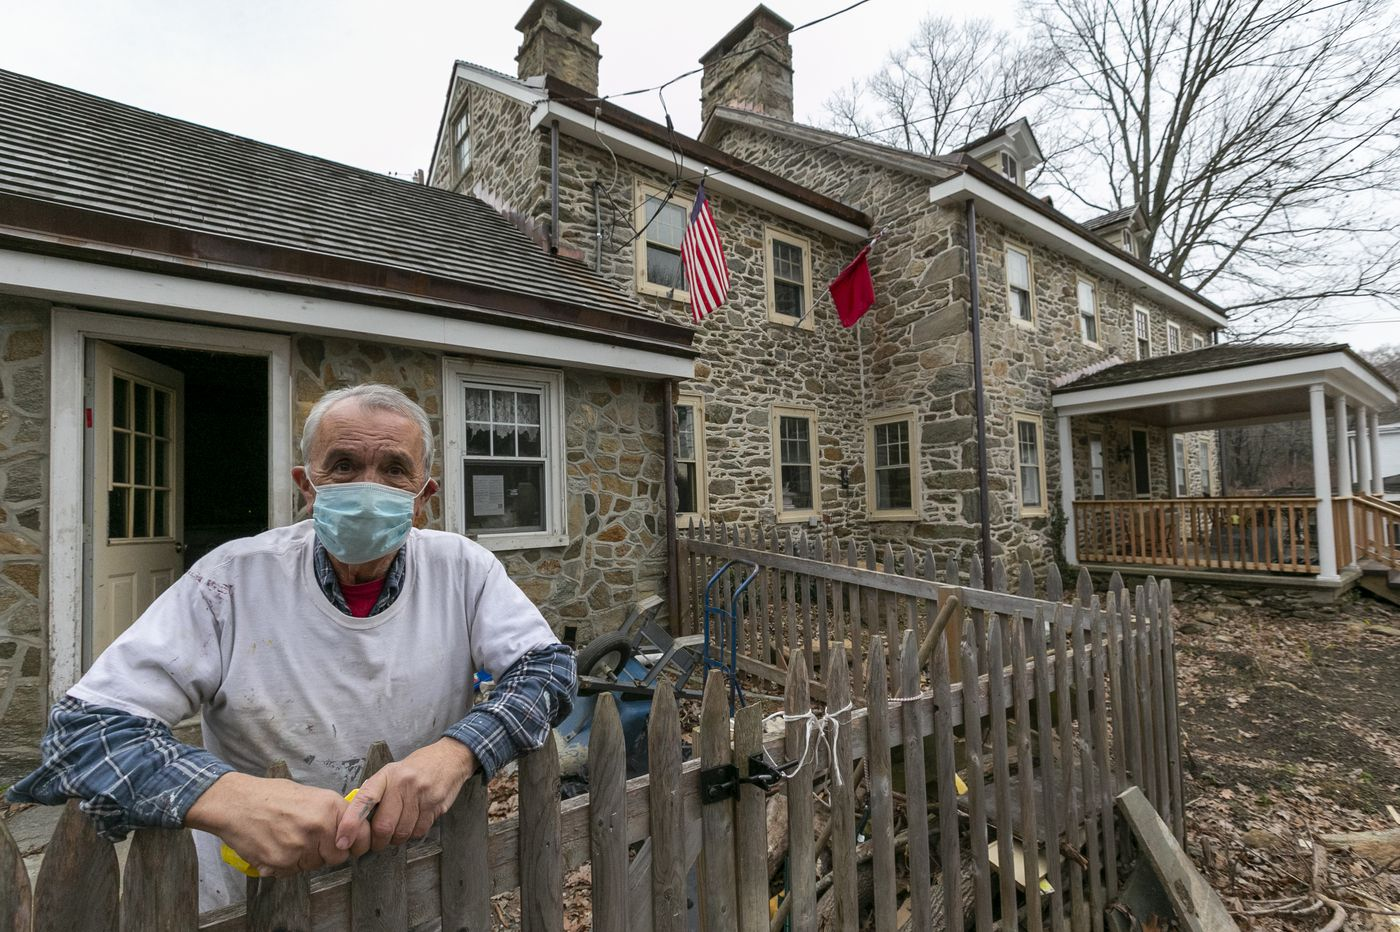 Retired teacher has become the custodian of 18th-century houses and a piece of Pennsylvania history